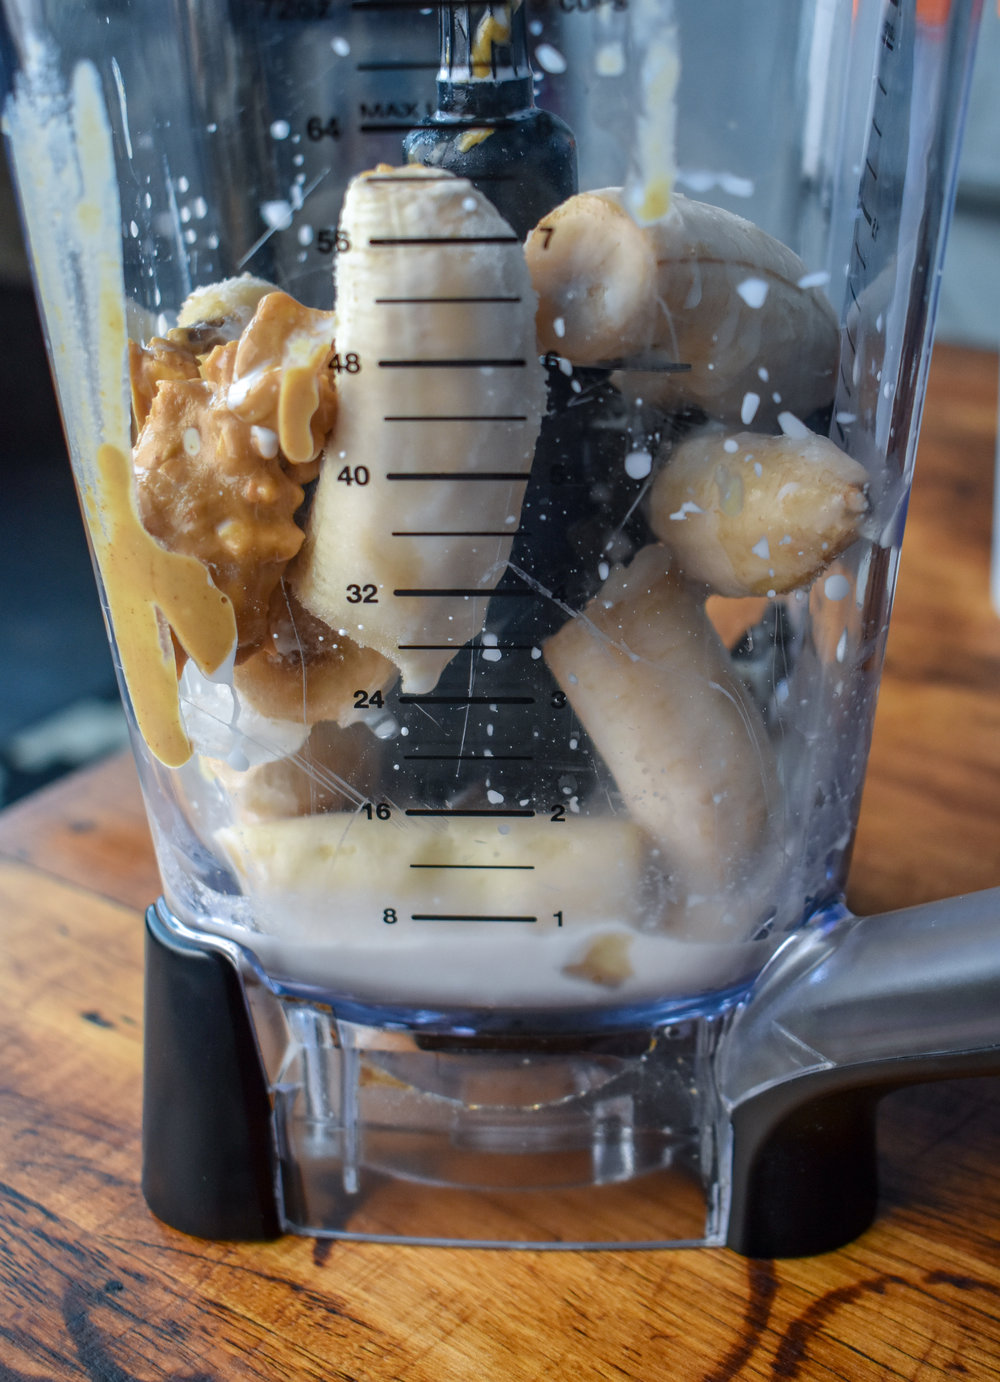 1. In a high speed blender, blend all the ice cream ingredients until smooth.